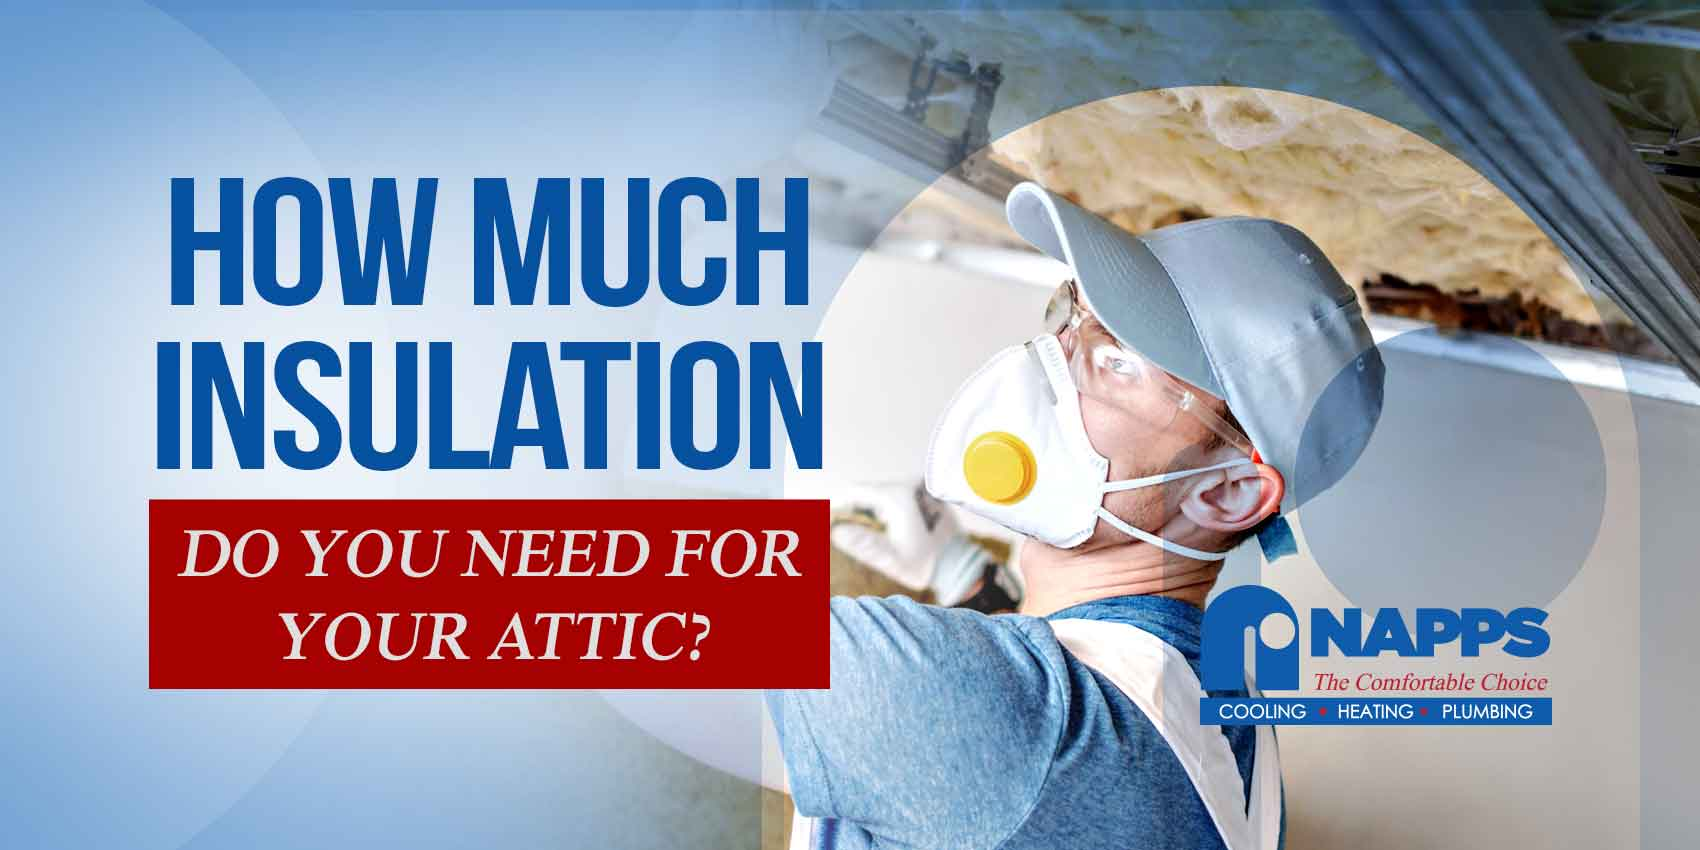 How Much Insulation Do You Need For Your Attic